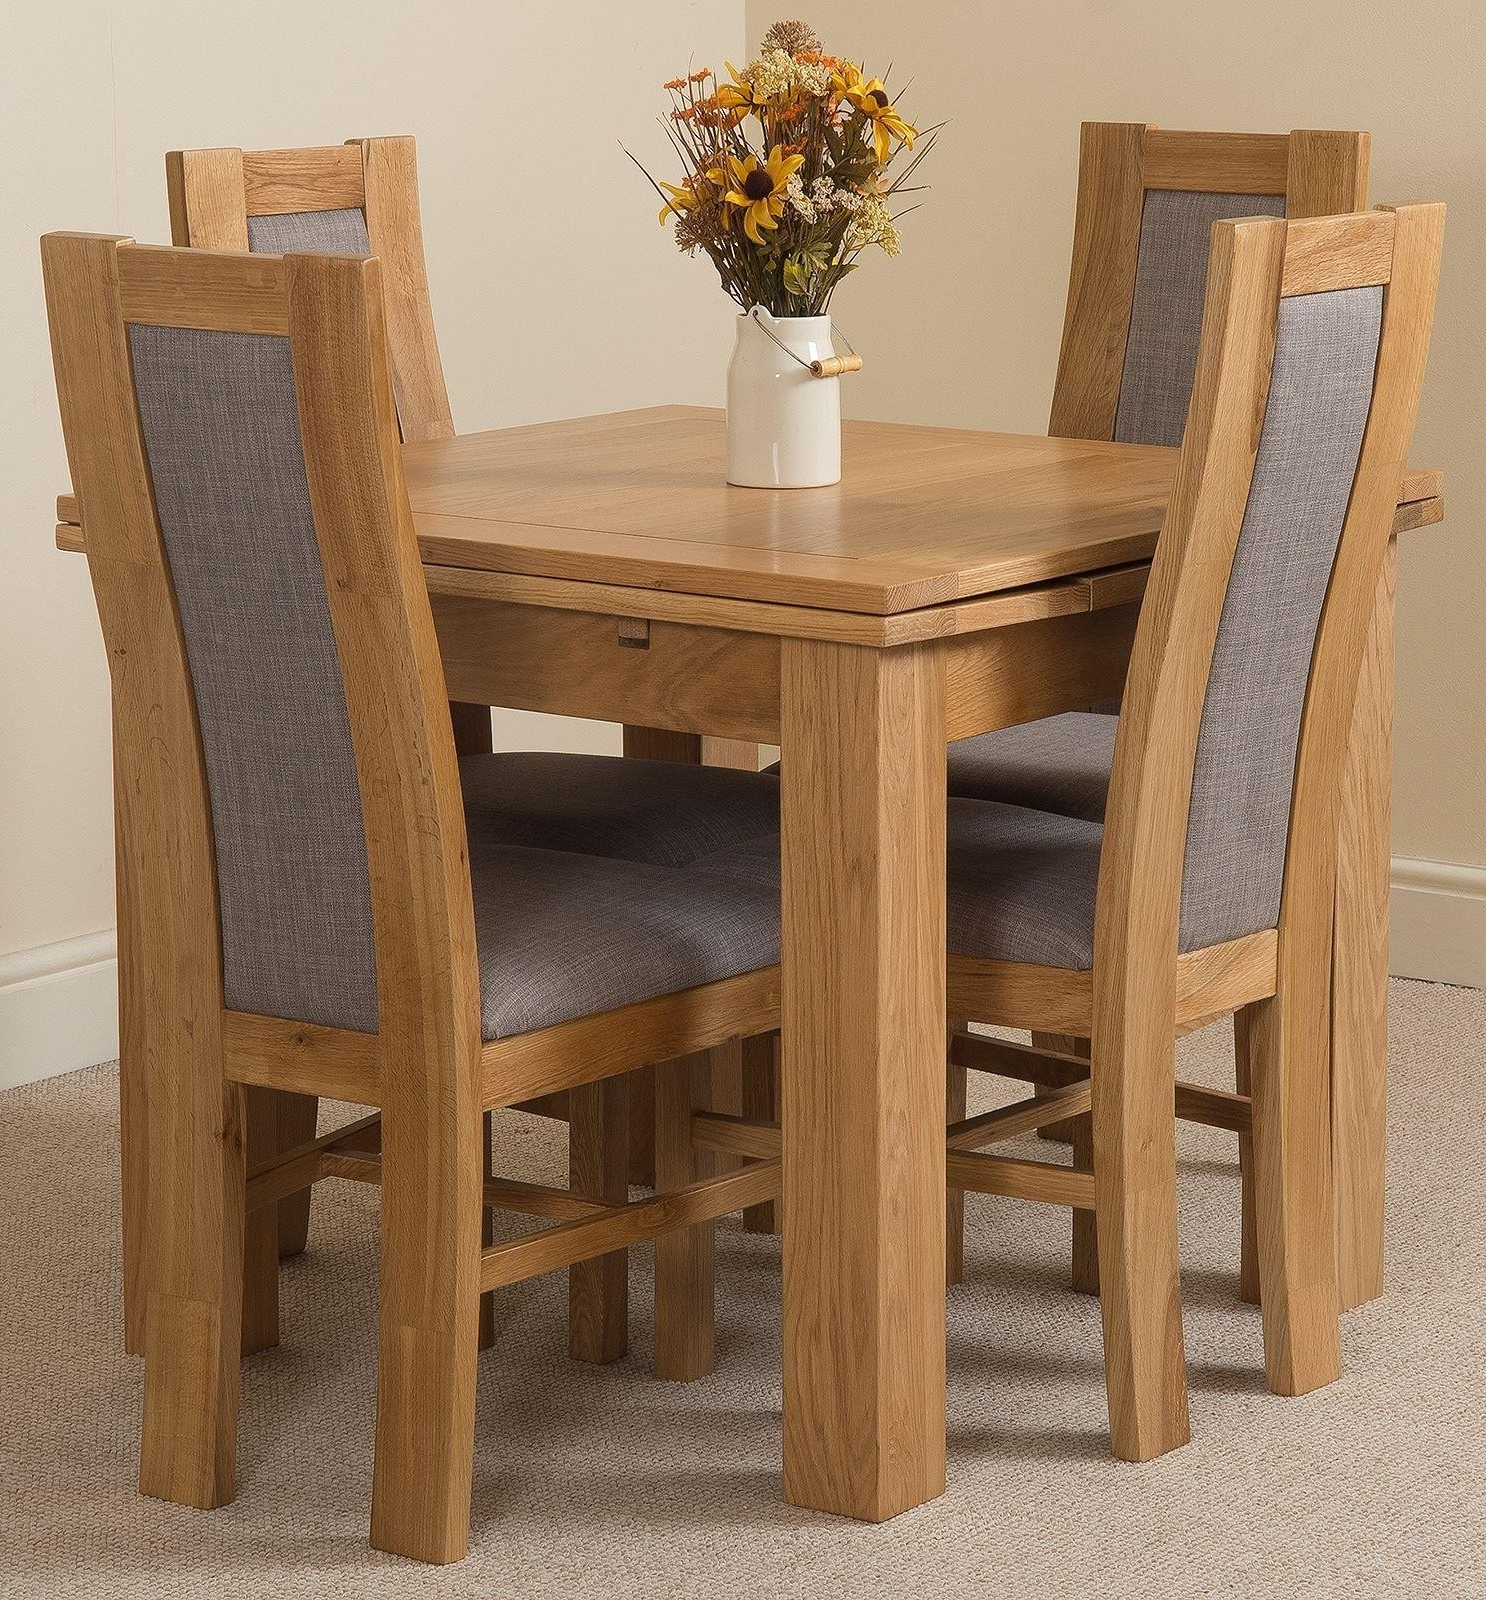 Trendy Richmond Oak Dining Set (90 150Cm) 4 Stanford Chairs Regarding Light Oak Dining Tables And Chairs (View 4 of 25)